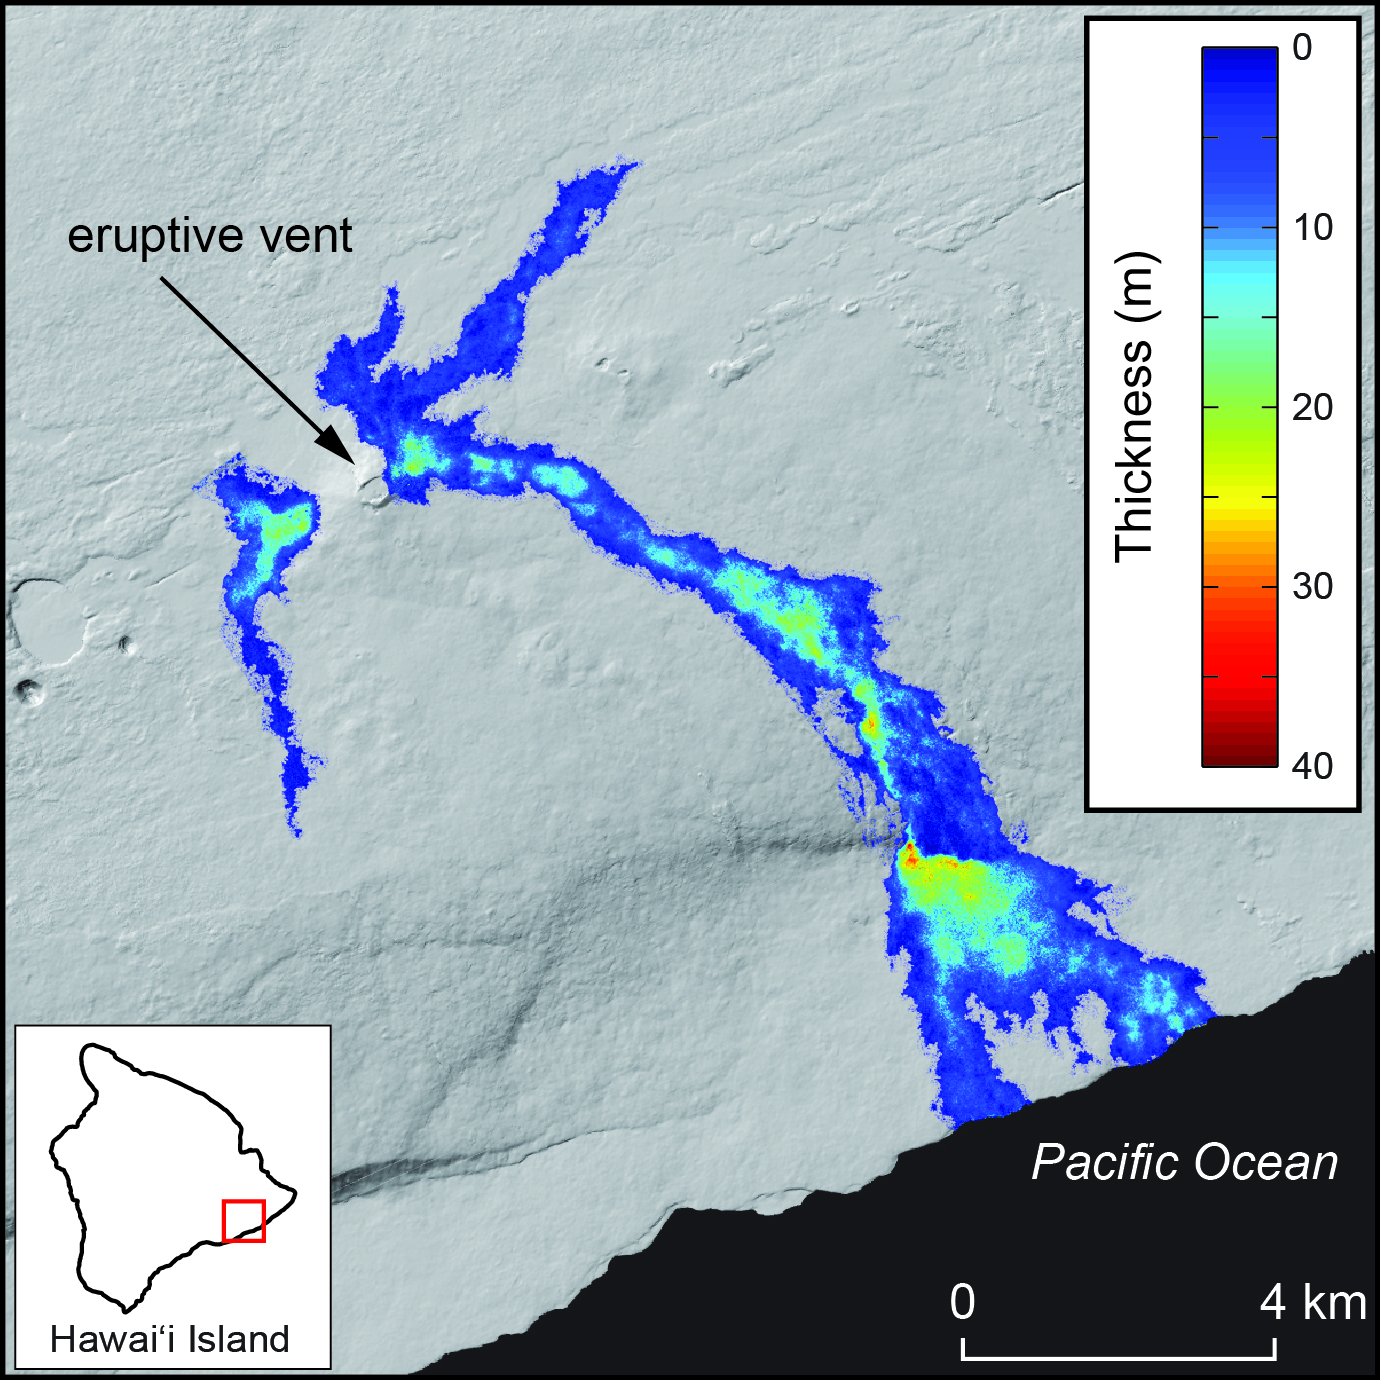 Map of lava flow thickness on Kilauea volcano for activity that occurred during July 2011–June 2013, overlain on a shaded relief map of the region.  Data are derived from differencing DEMs that were produced from TanDEM-X satellite SAR imagery.  Color indicates lava flow thickness.  Gray areas were not covered by lava flows during the time spanned.